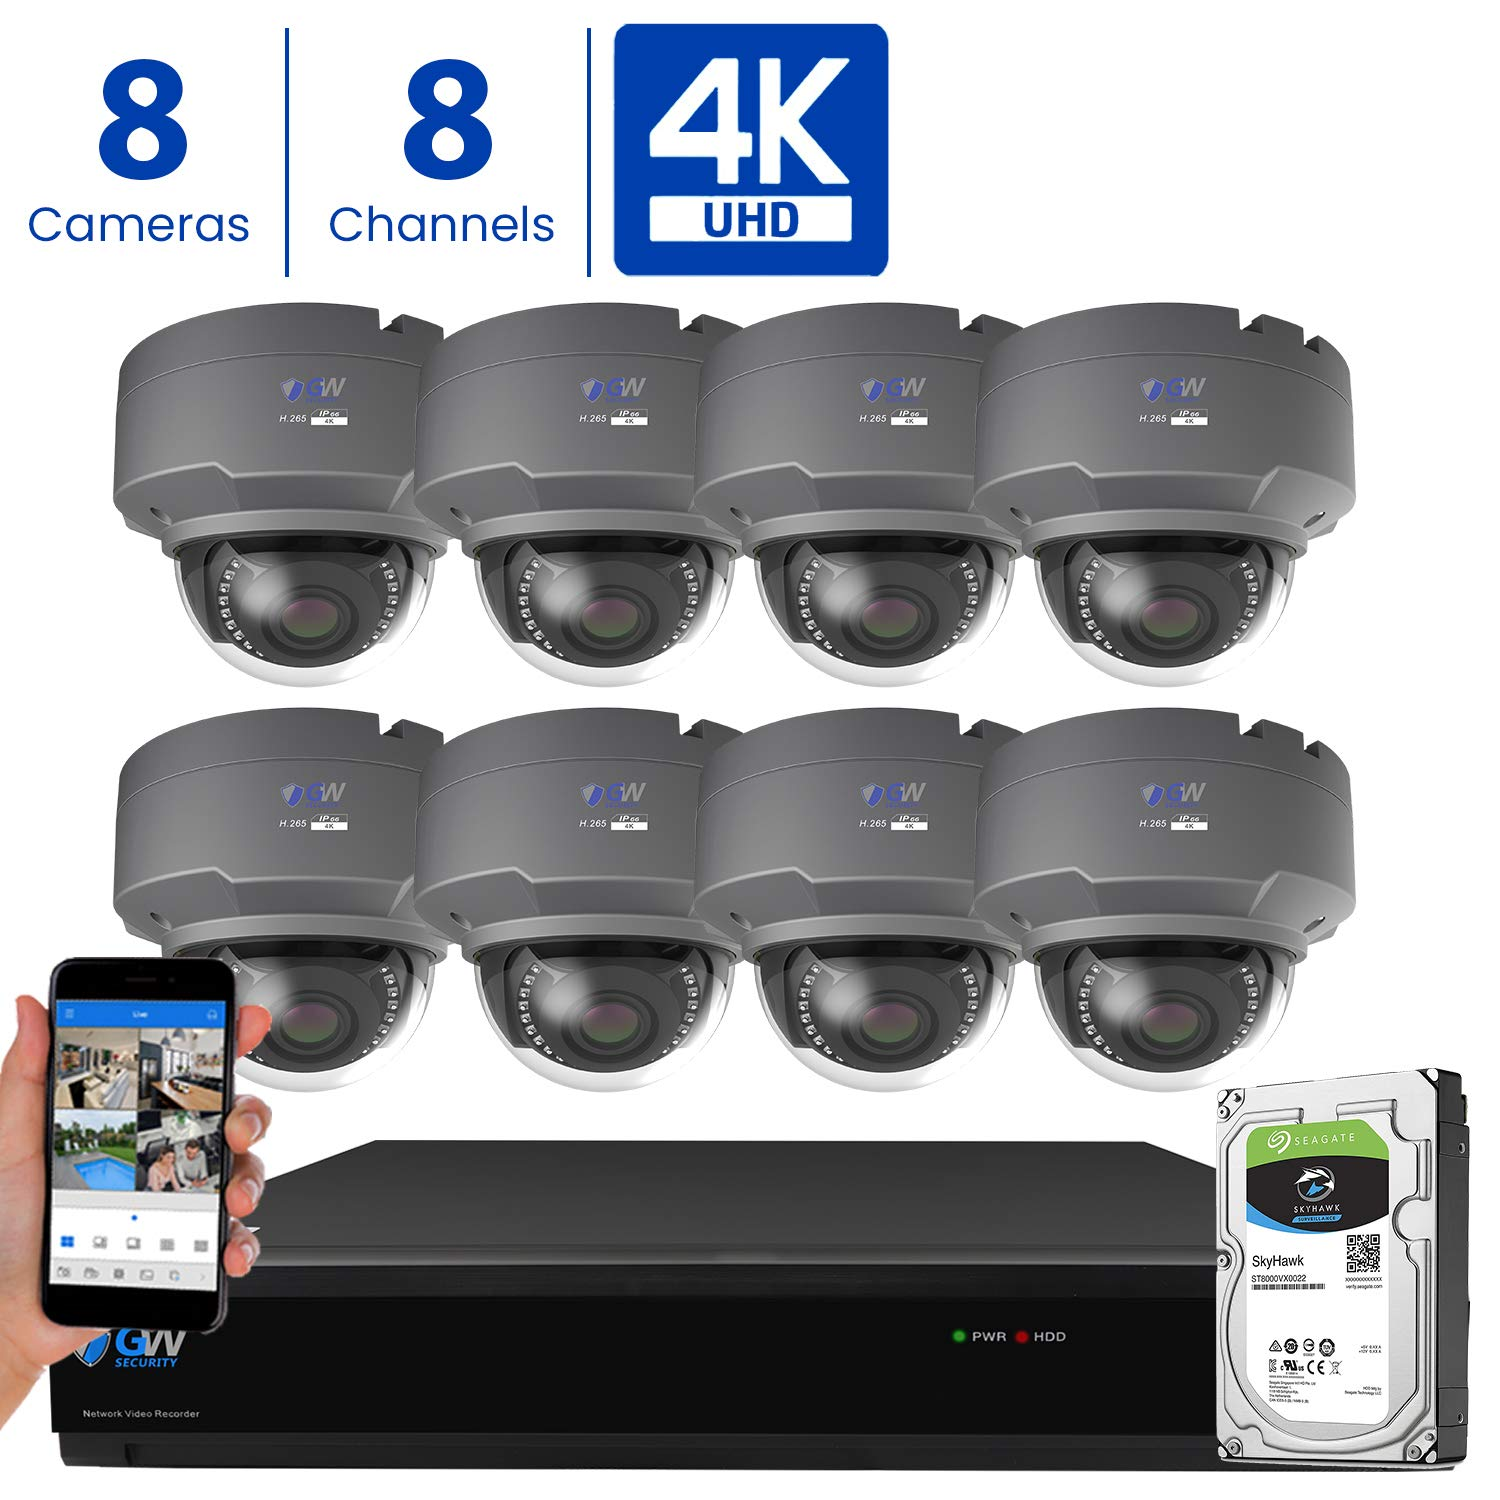 GW 8 Channel 4K H.265 CCTV DVR Security Camera System with 8 x UHD 8MP 2.8-12mm Varifocal Zoom 4K Dome Surveillance Cameras and 3TB HDD, Free Remote View, Motion Alert with Snapshot